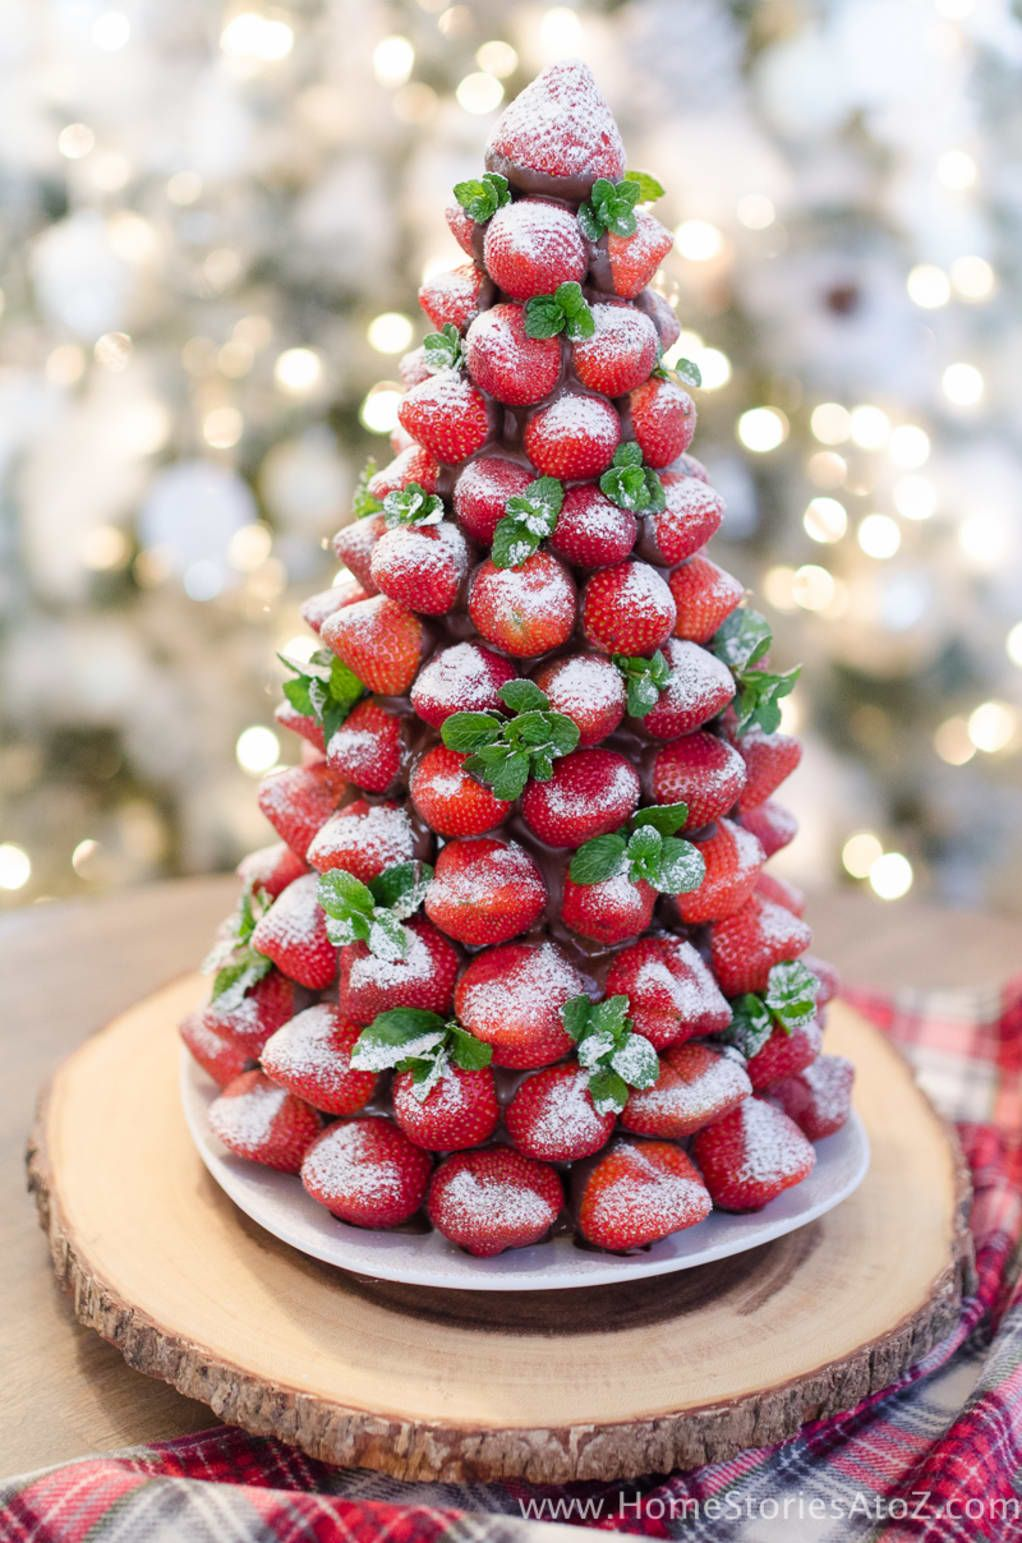 These Christmas Tree Recipes Are Blowing Up On Pinterest Rachael Ray In Season In 2020 Christmas Tree Food Christmas Party Food Delicious Christmas Desserts